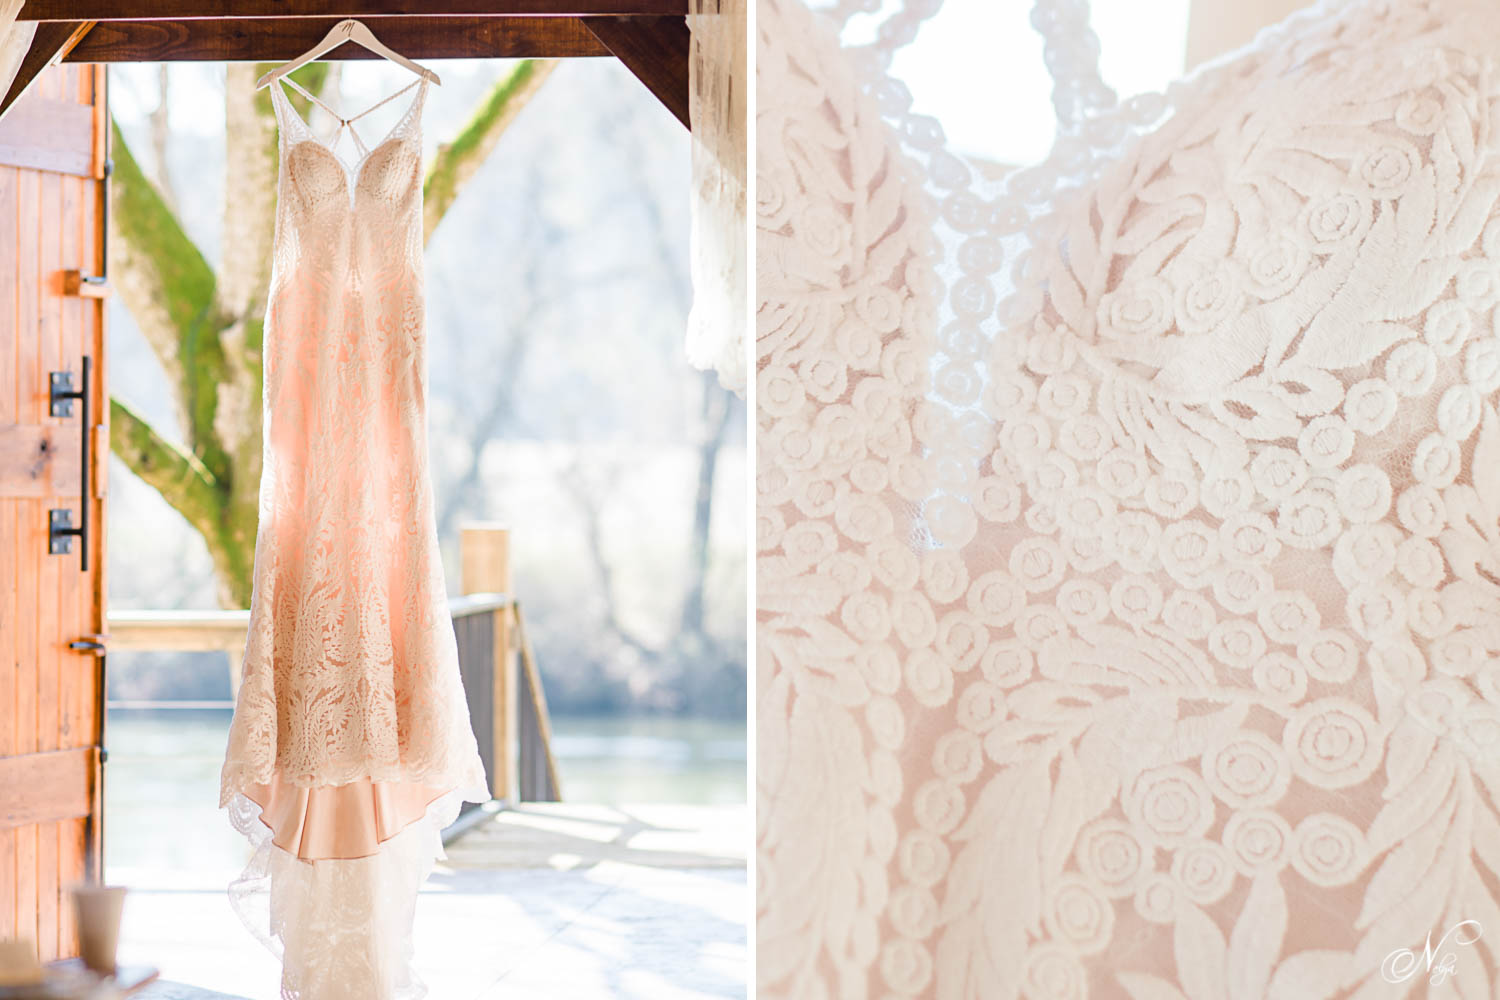 lace wedding dress from Monicas bridal in Chattanooga hanging on door overlooking the river